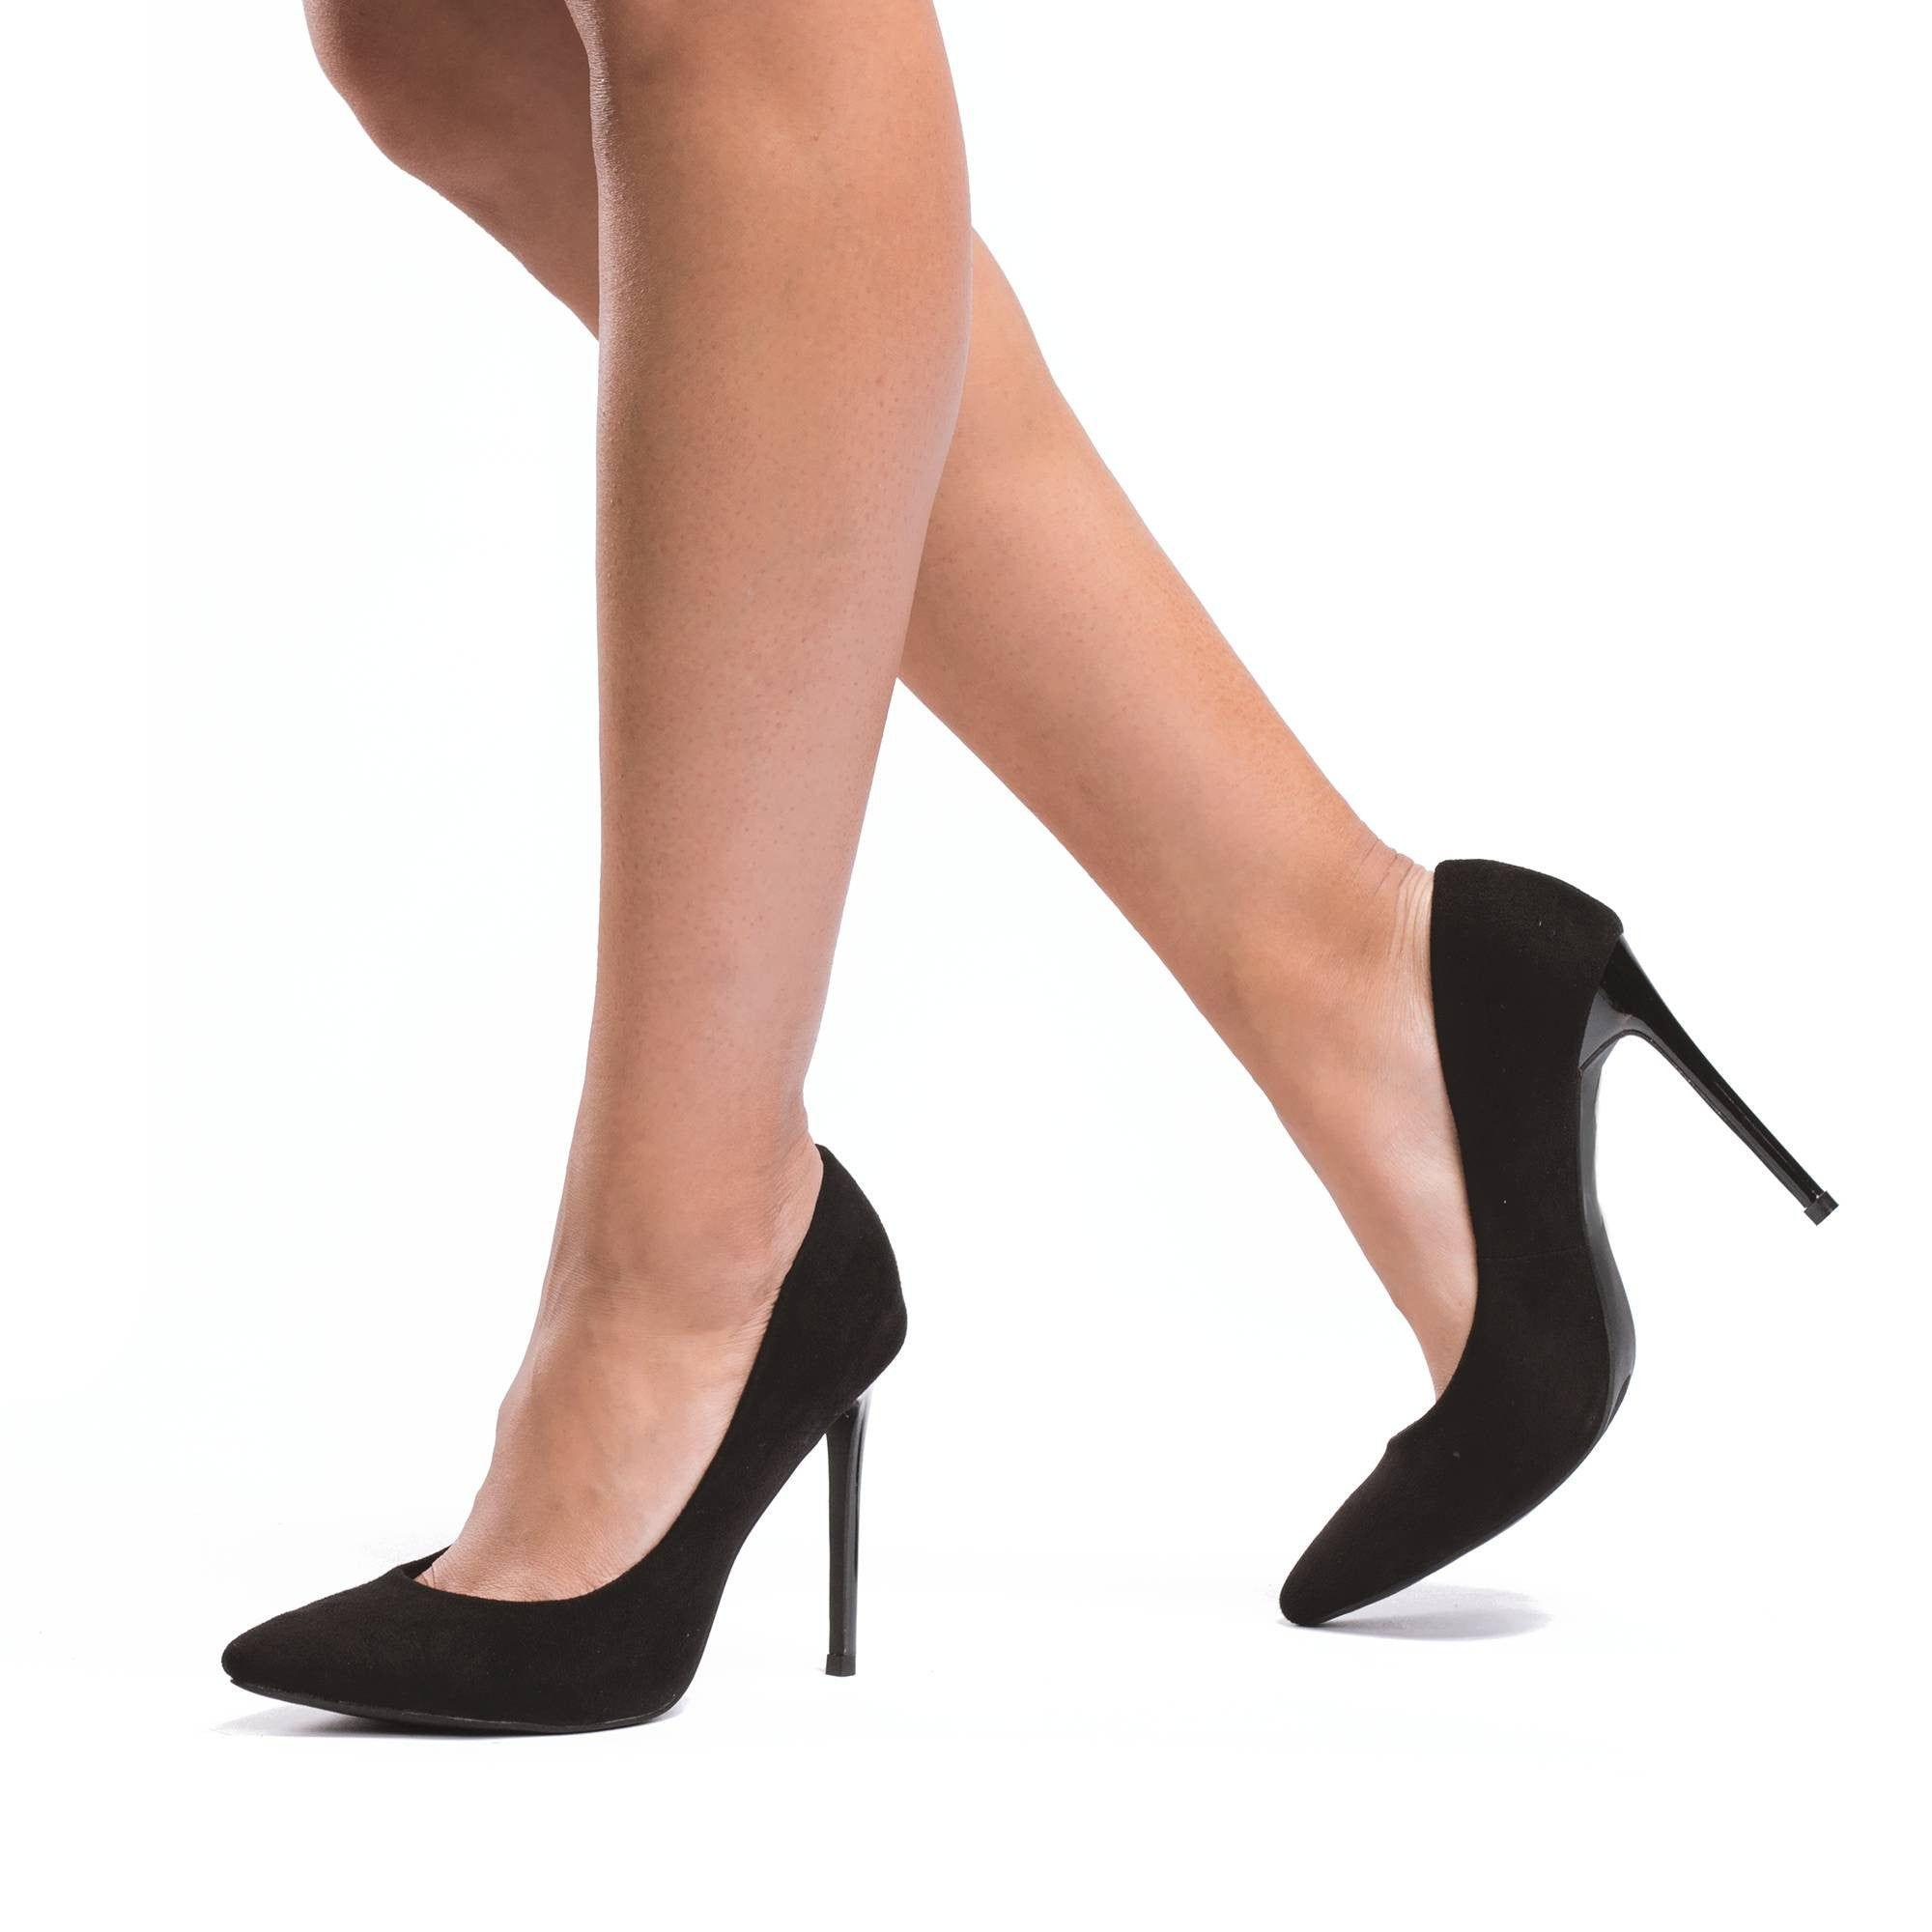 DARCY Pointed Toe Stiletto